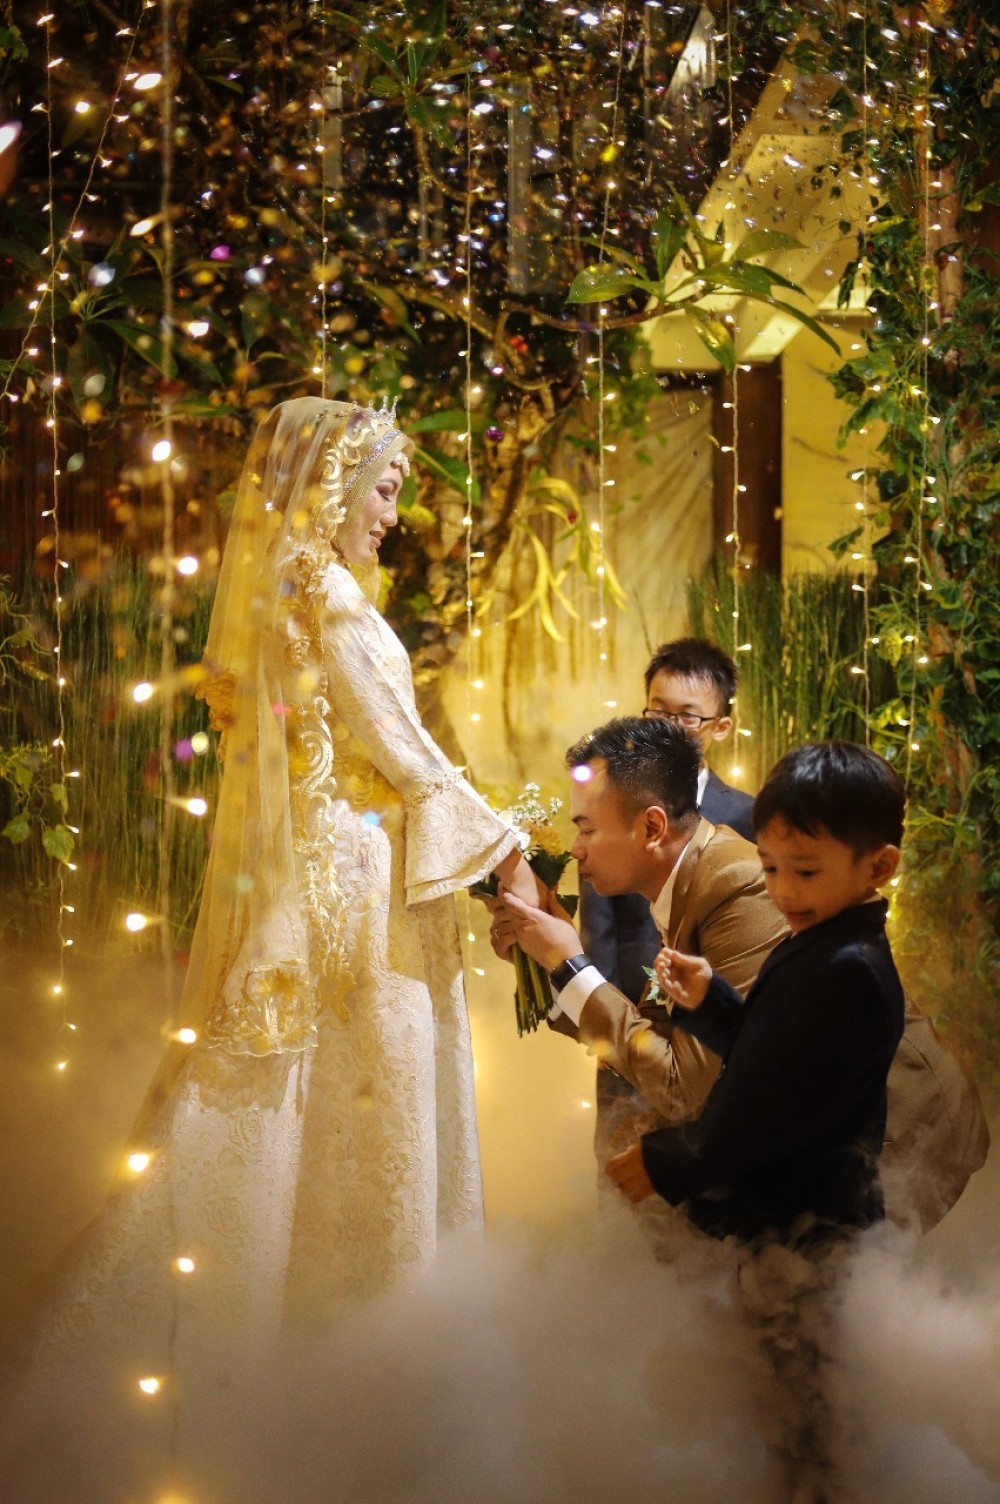 WEDDING RISTA DAN DAMAR 5